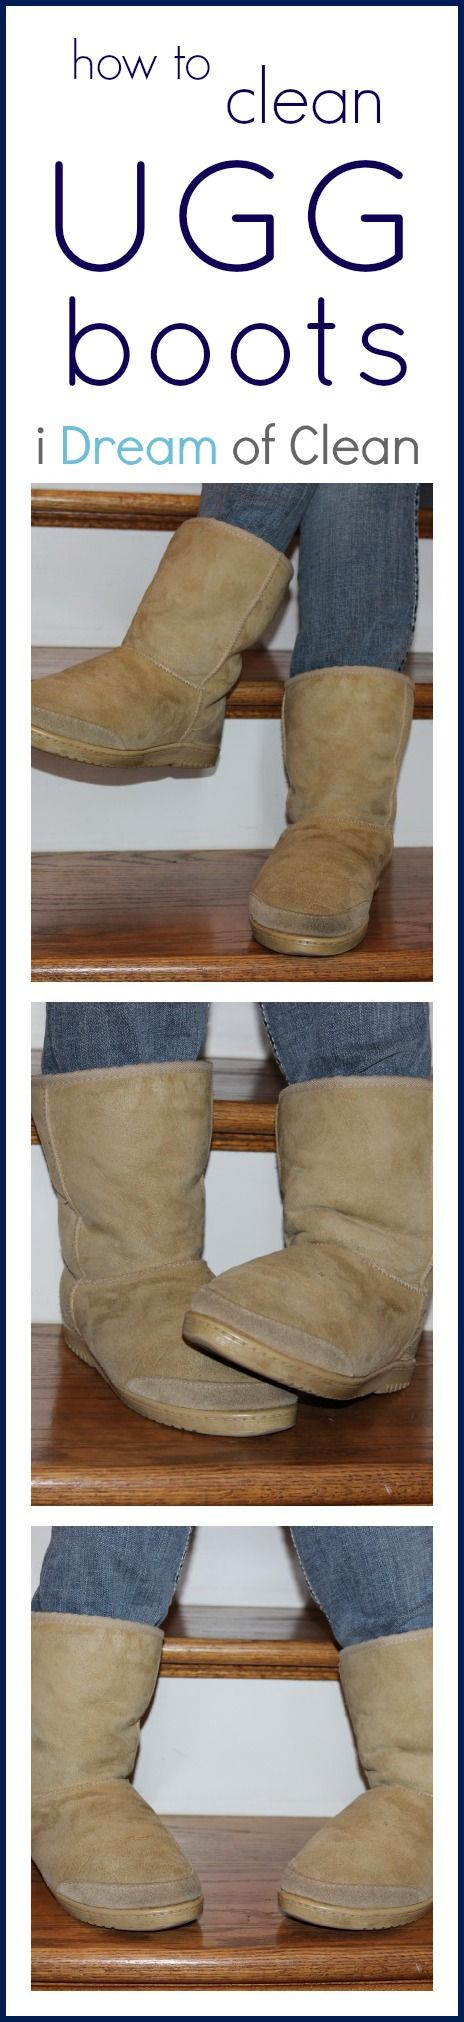 Ugg boots have become a very popular fashion essential over the past few years...BUT what happens when they get stained or dirty. These tips will help you clean and deodorize your precious Ugg boots! #fashion #ugg #clean